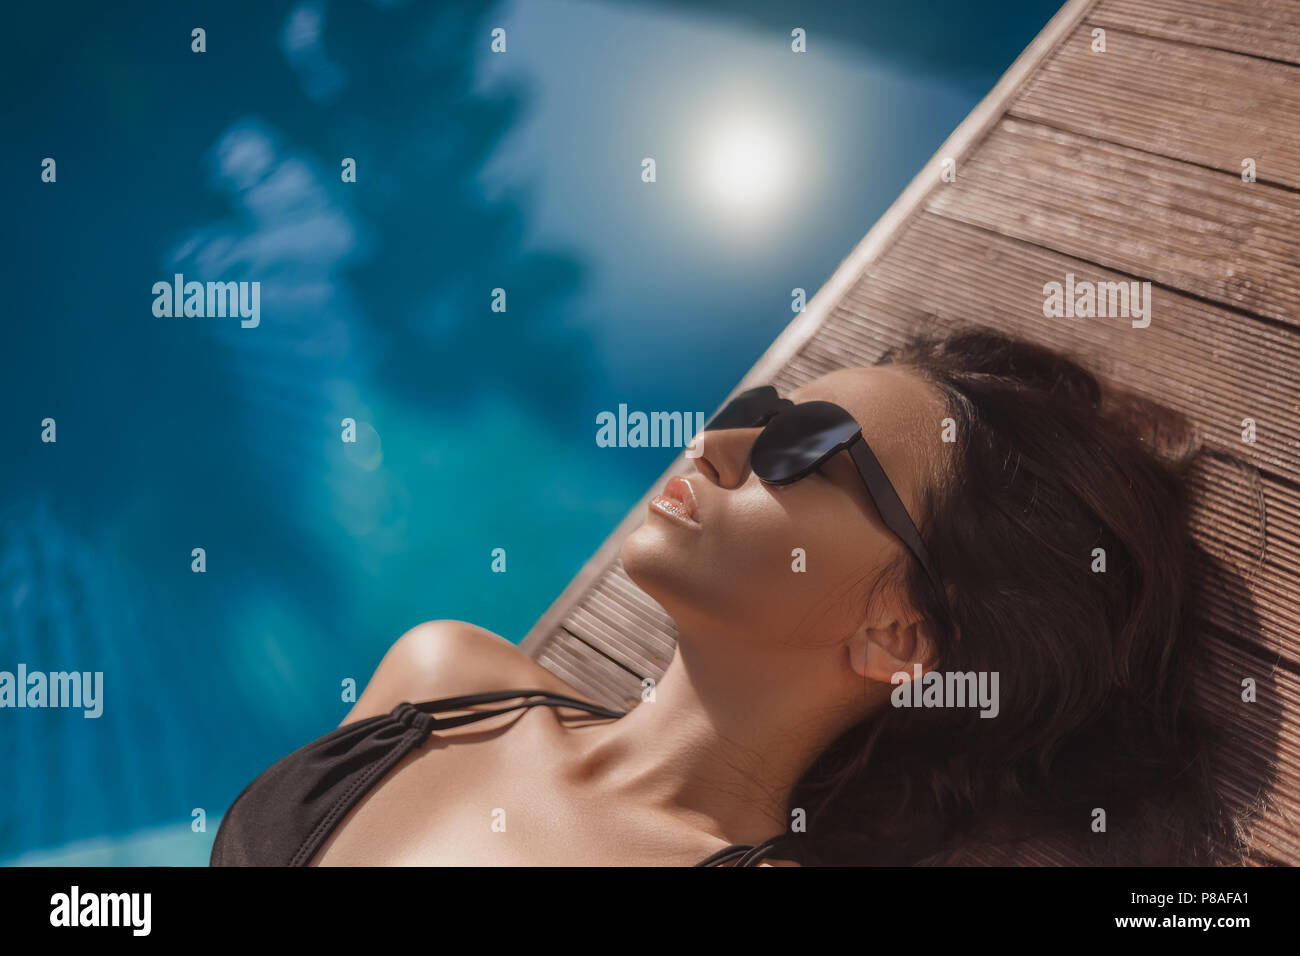 close-up portrait of relaxed young woman in black bikini lying at poolside - Stock Image